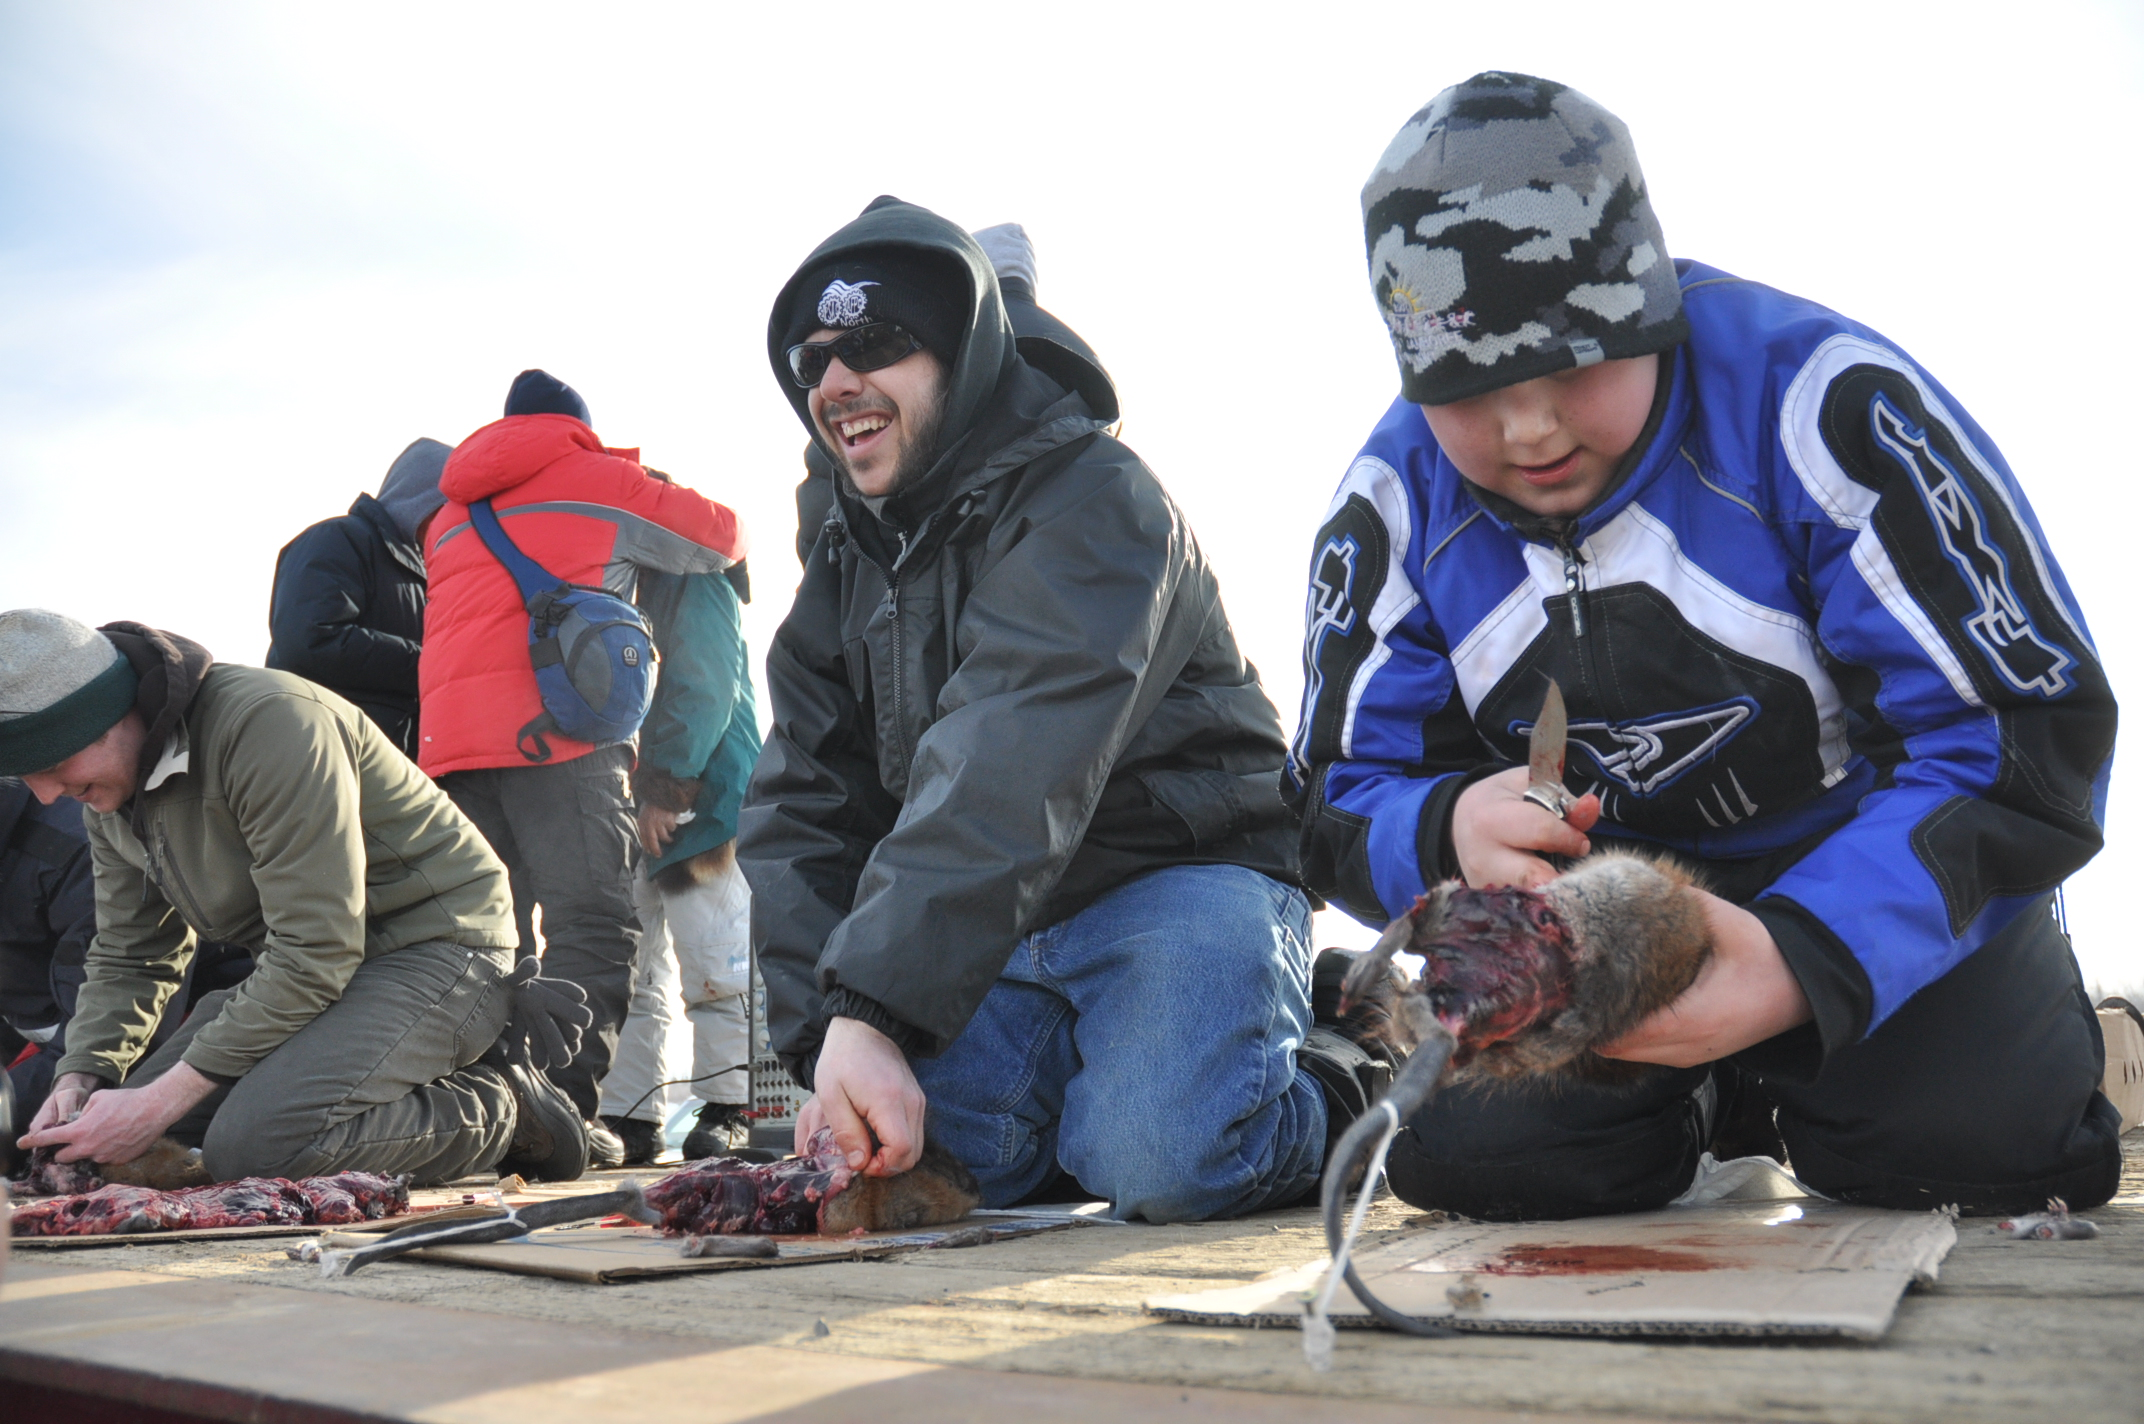 Man Skinning A Muskrat At The National Outdoor Show And World ...